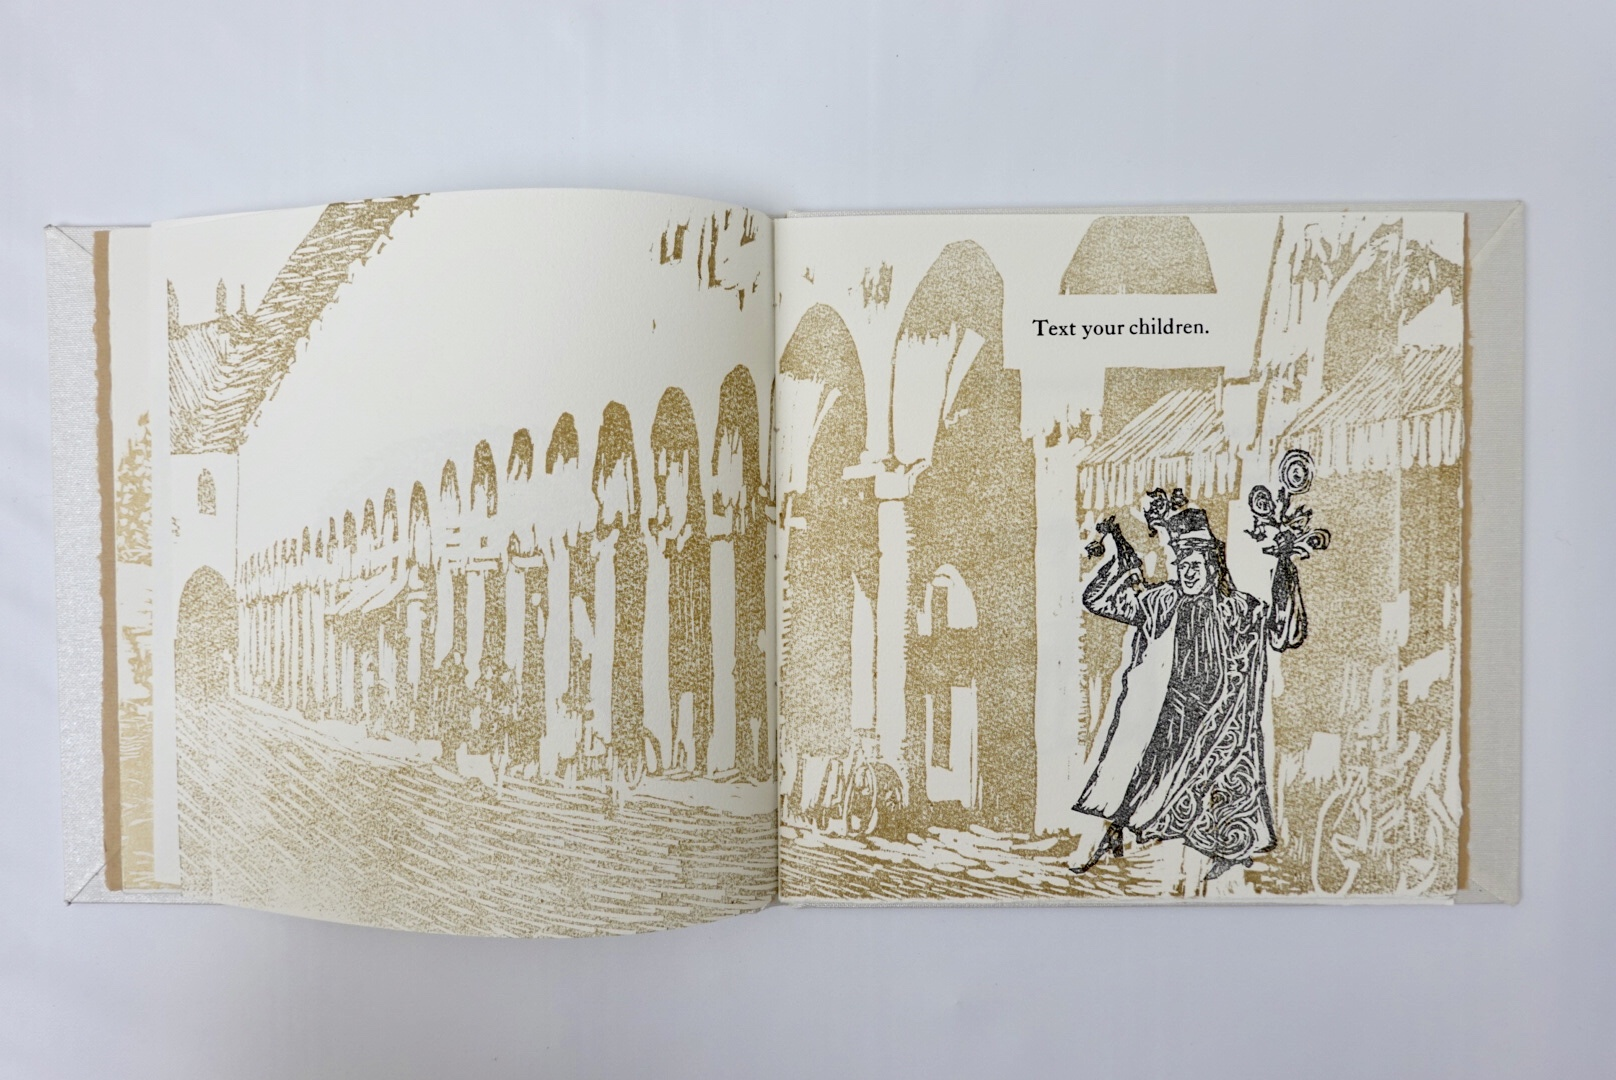 fifth page with background architectural image in wood cut relief and Child Catcher wood cut relief